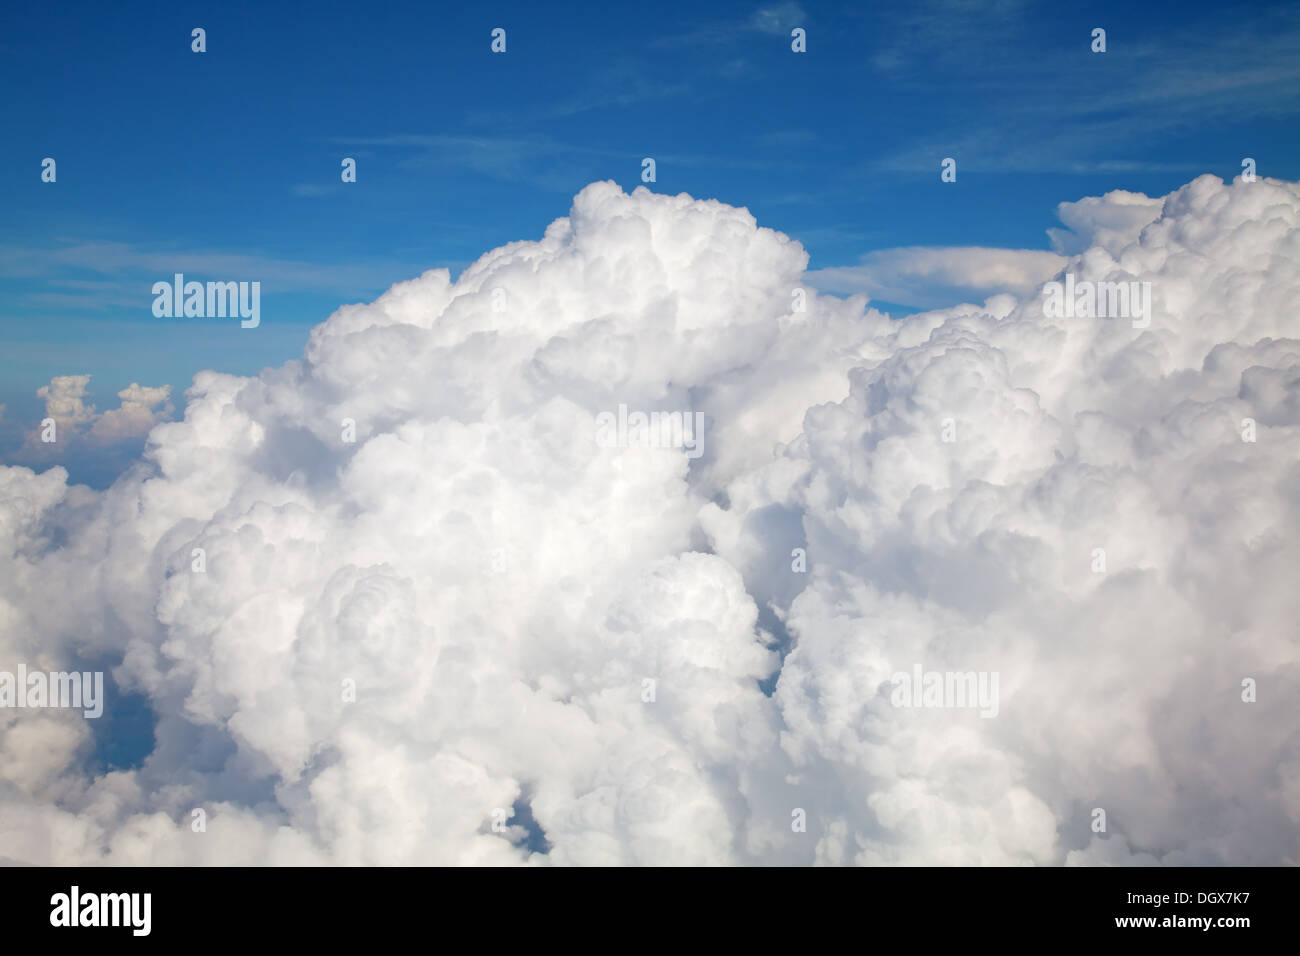 White fluffy clouds in blue sky - Stock Image